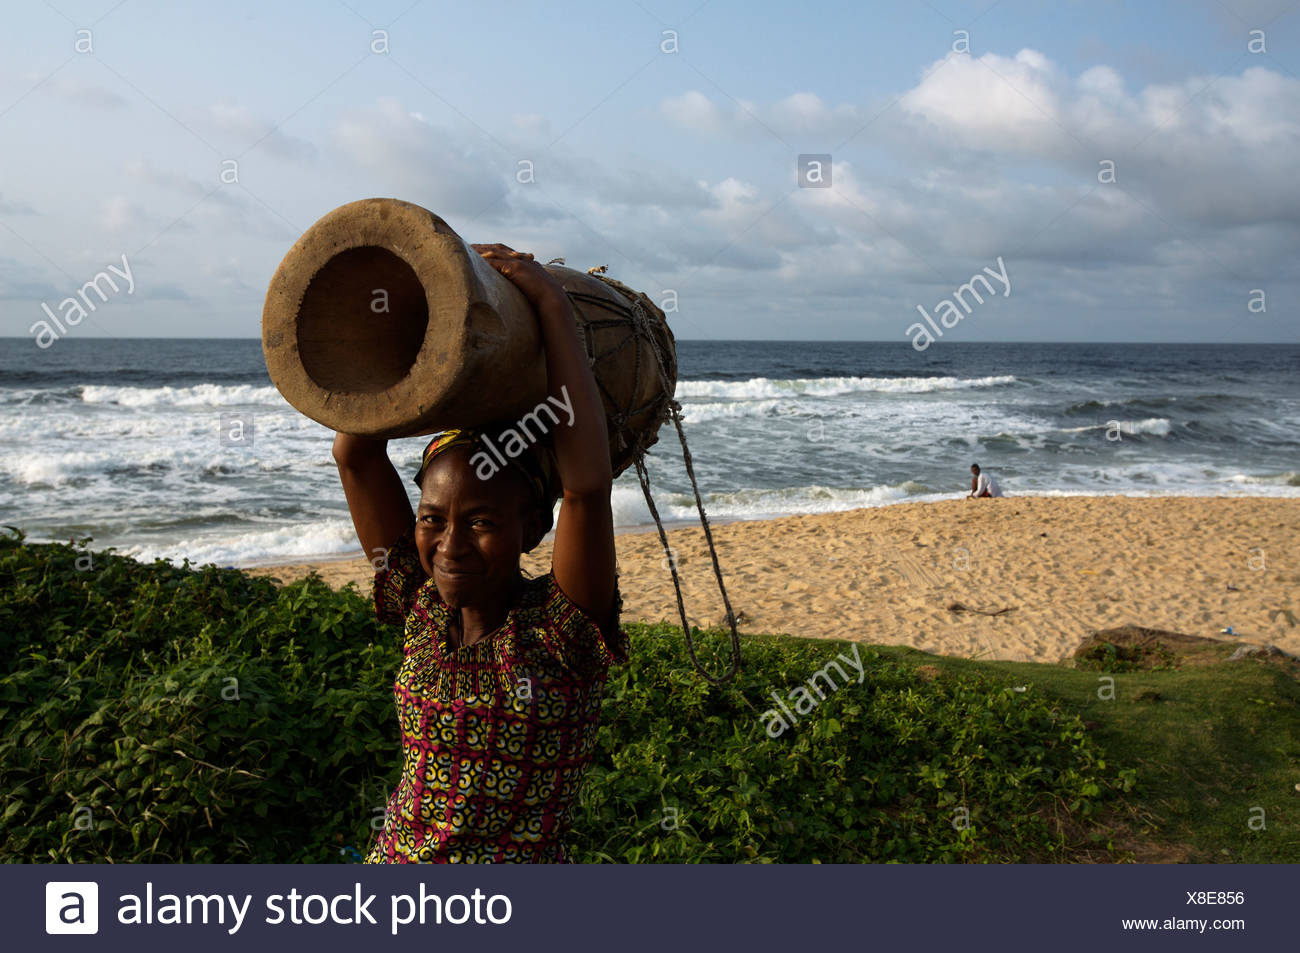 Liberia recovers from decades of civil war. - Stock Image